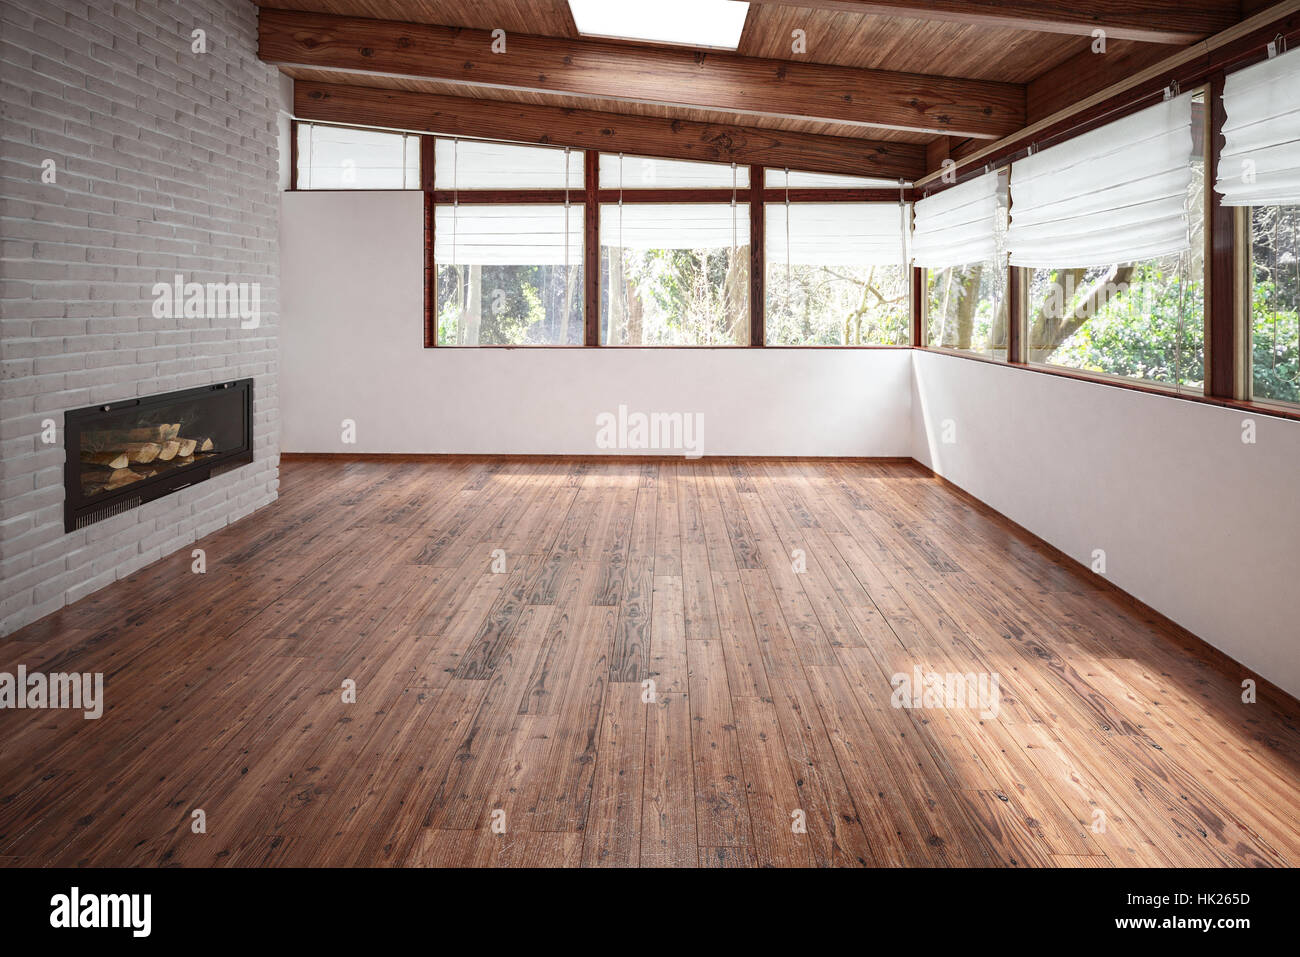 Empty room with panoramic windows, wooden floor and ceiling and modern minimalist fireplace. Architecture and interior Stock Photo